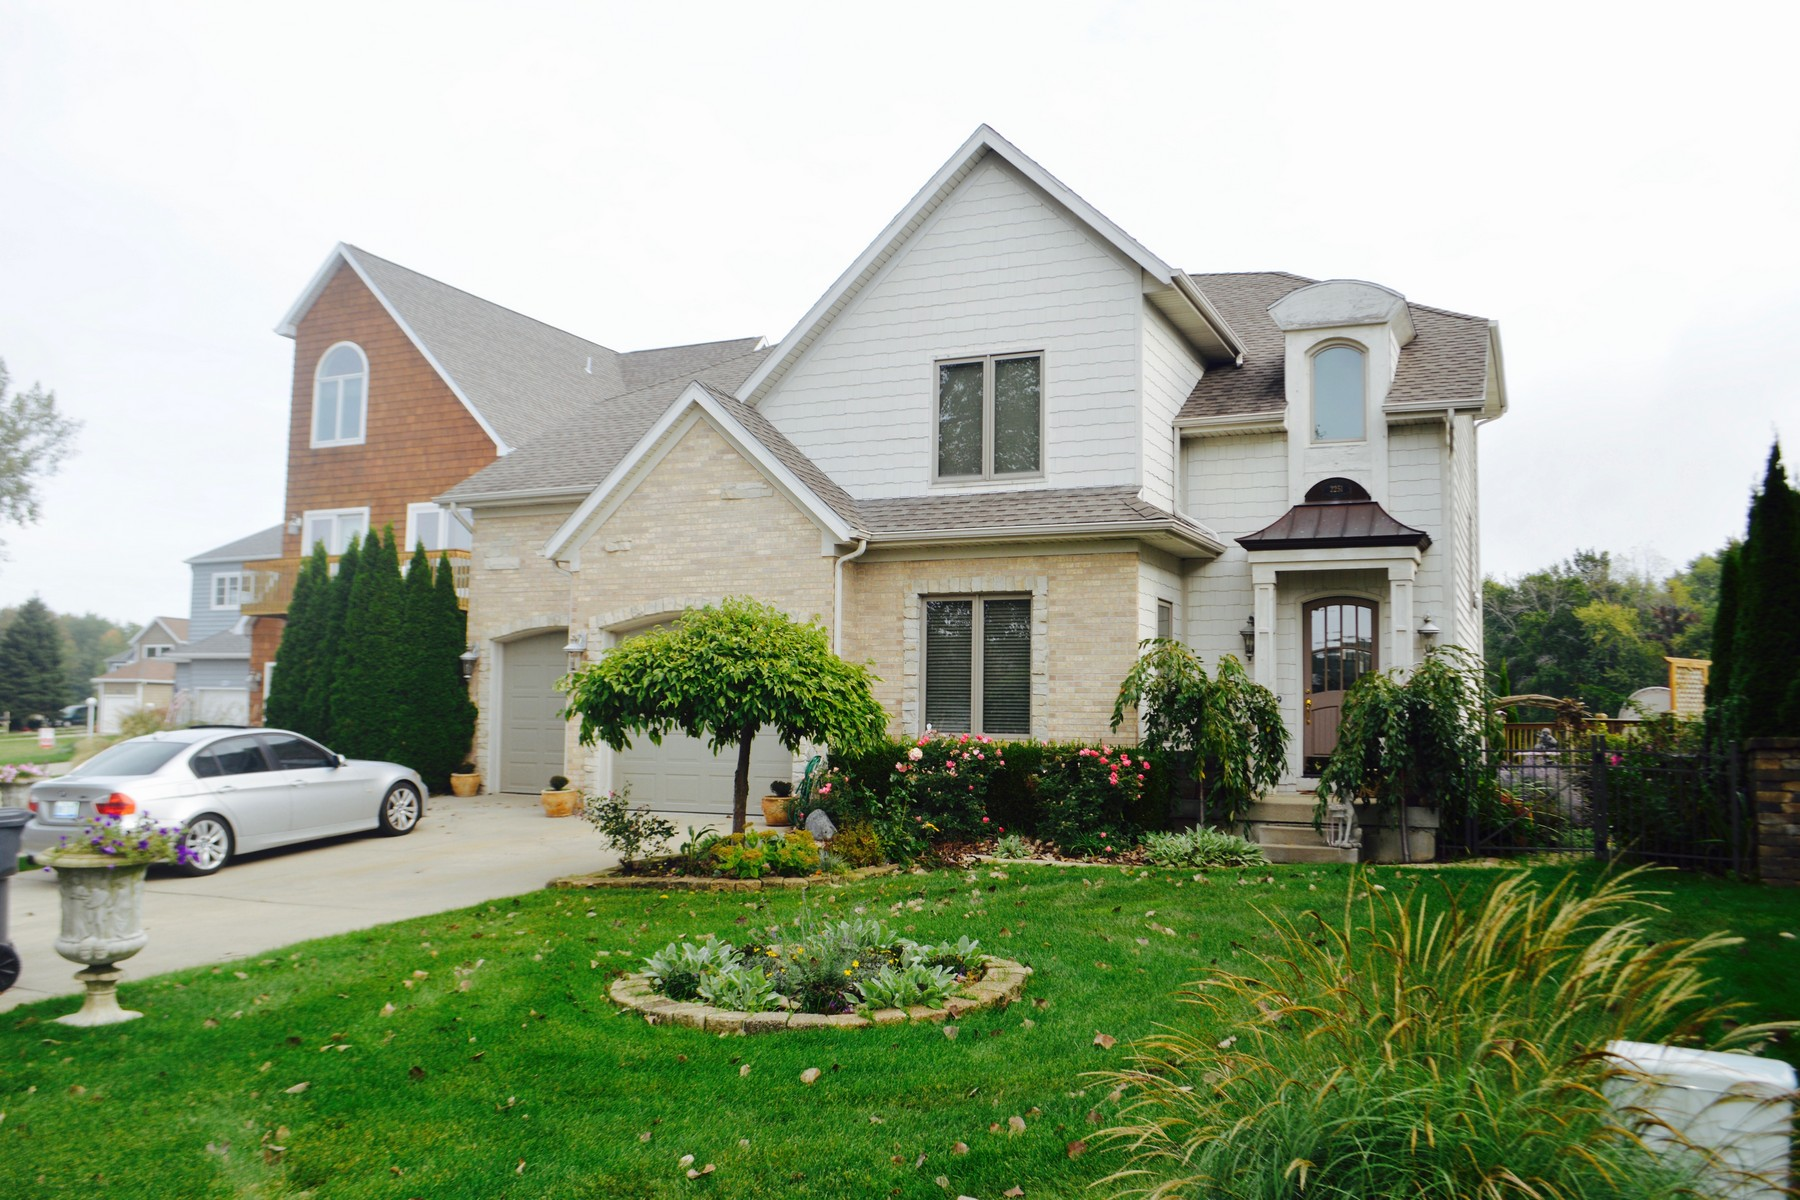 Single Family Home for Sale at Custom Built Riverfront Home 2251 Riverside Point St. Joseph, Michigan 49085 United States